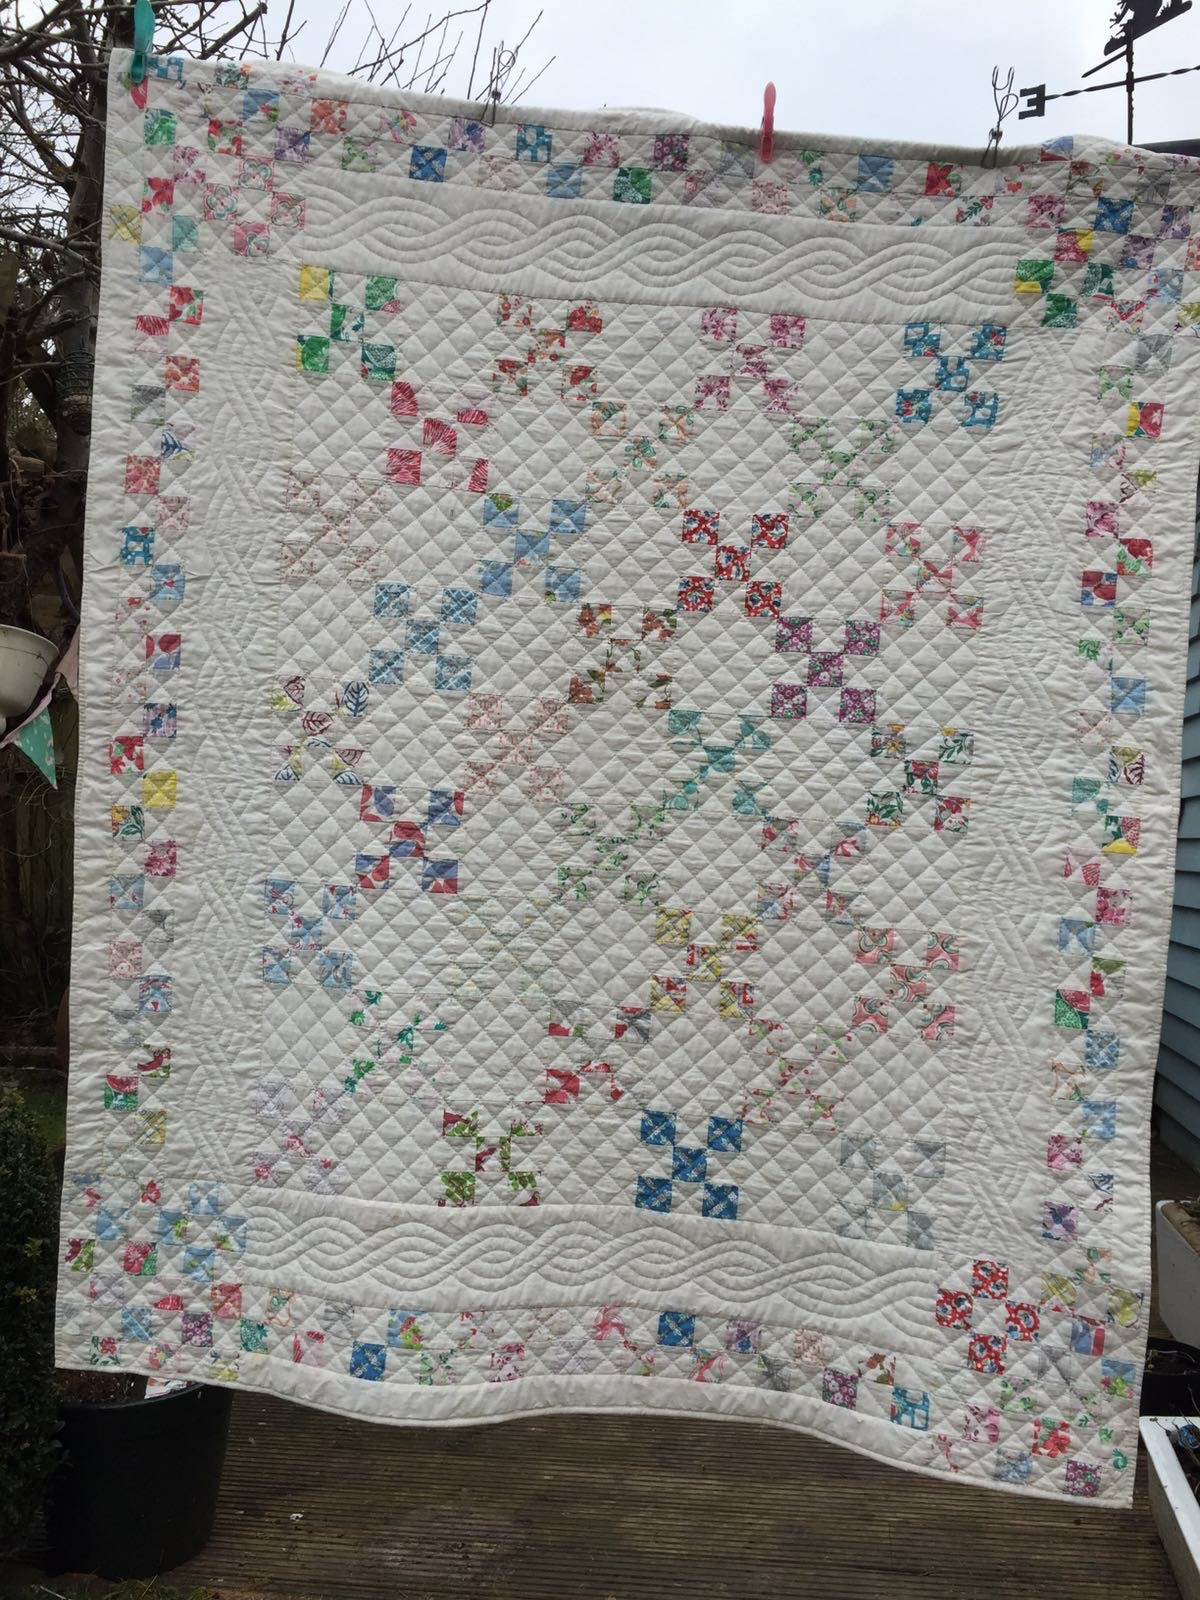 The Quilt I made in my hotel room after coming across Feed Sack fabric for the first time at a quilt show in Ascot